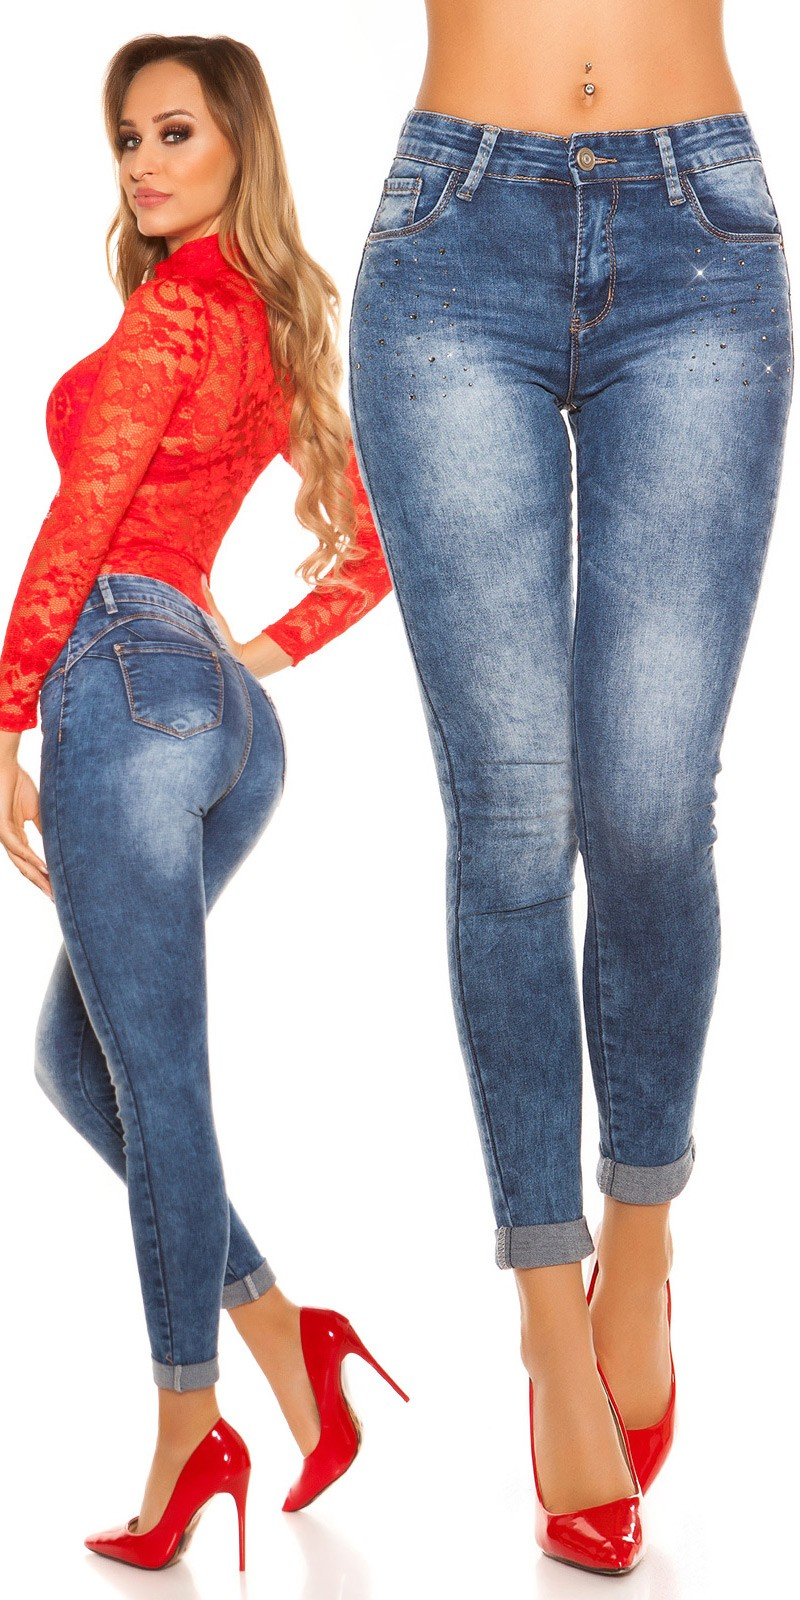 1300d9155d00 kkSkinny PuSH UP jeans with rhinestones  Color JEANSBLUE Size 36 0000YA1810 JEANSBLAU 6  · Rifle s vysokym pasom